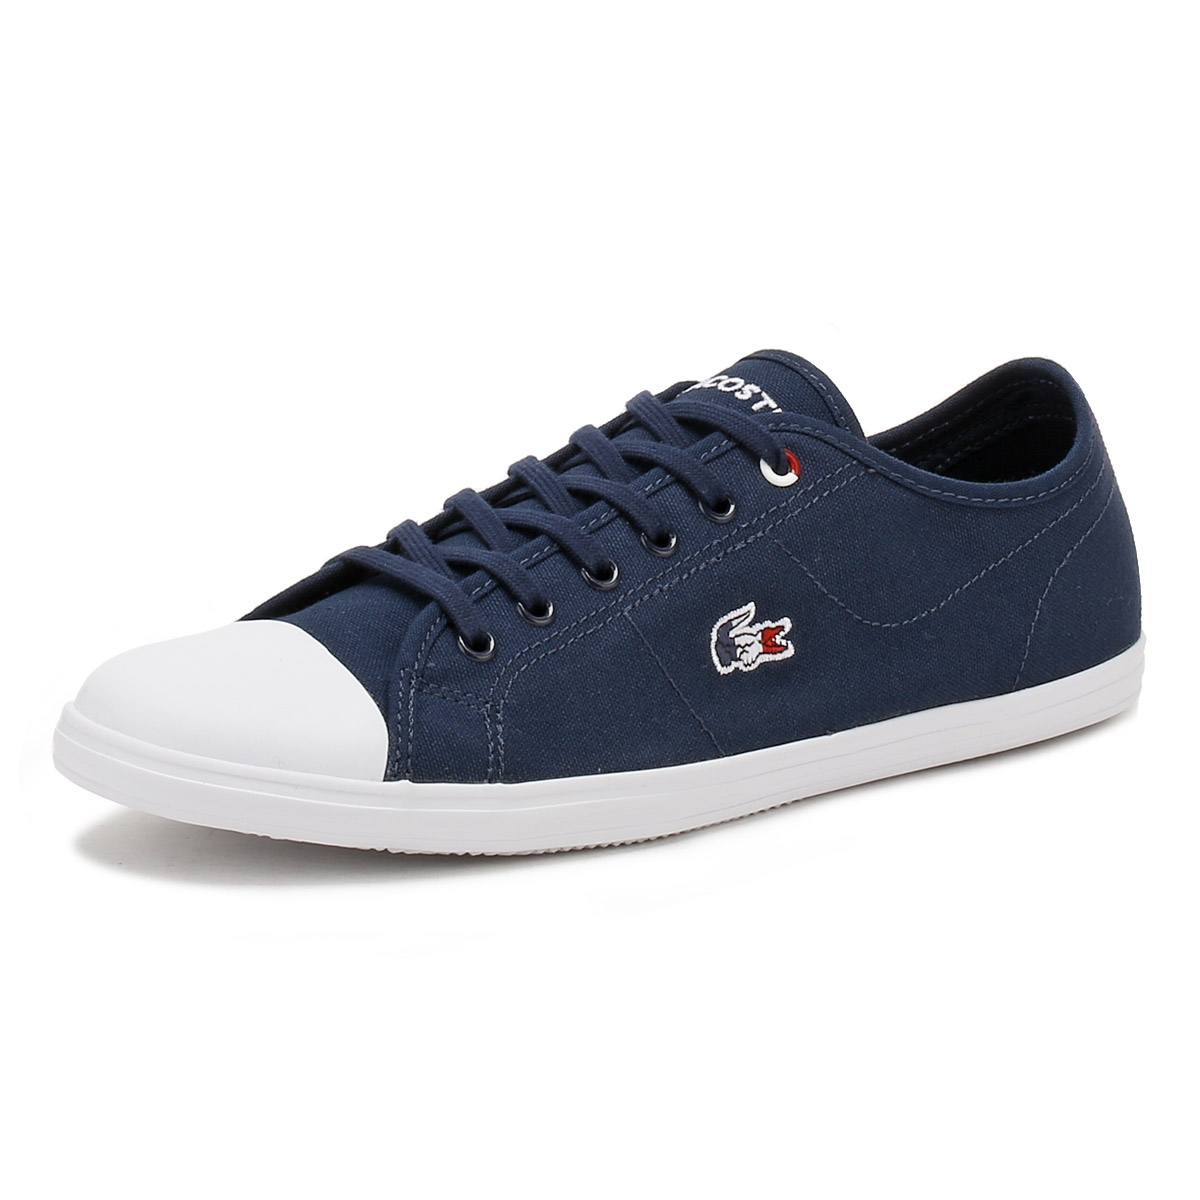 Lacoste-Womens-Trainers-Navy-or-White-Ziane-317-